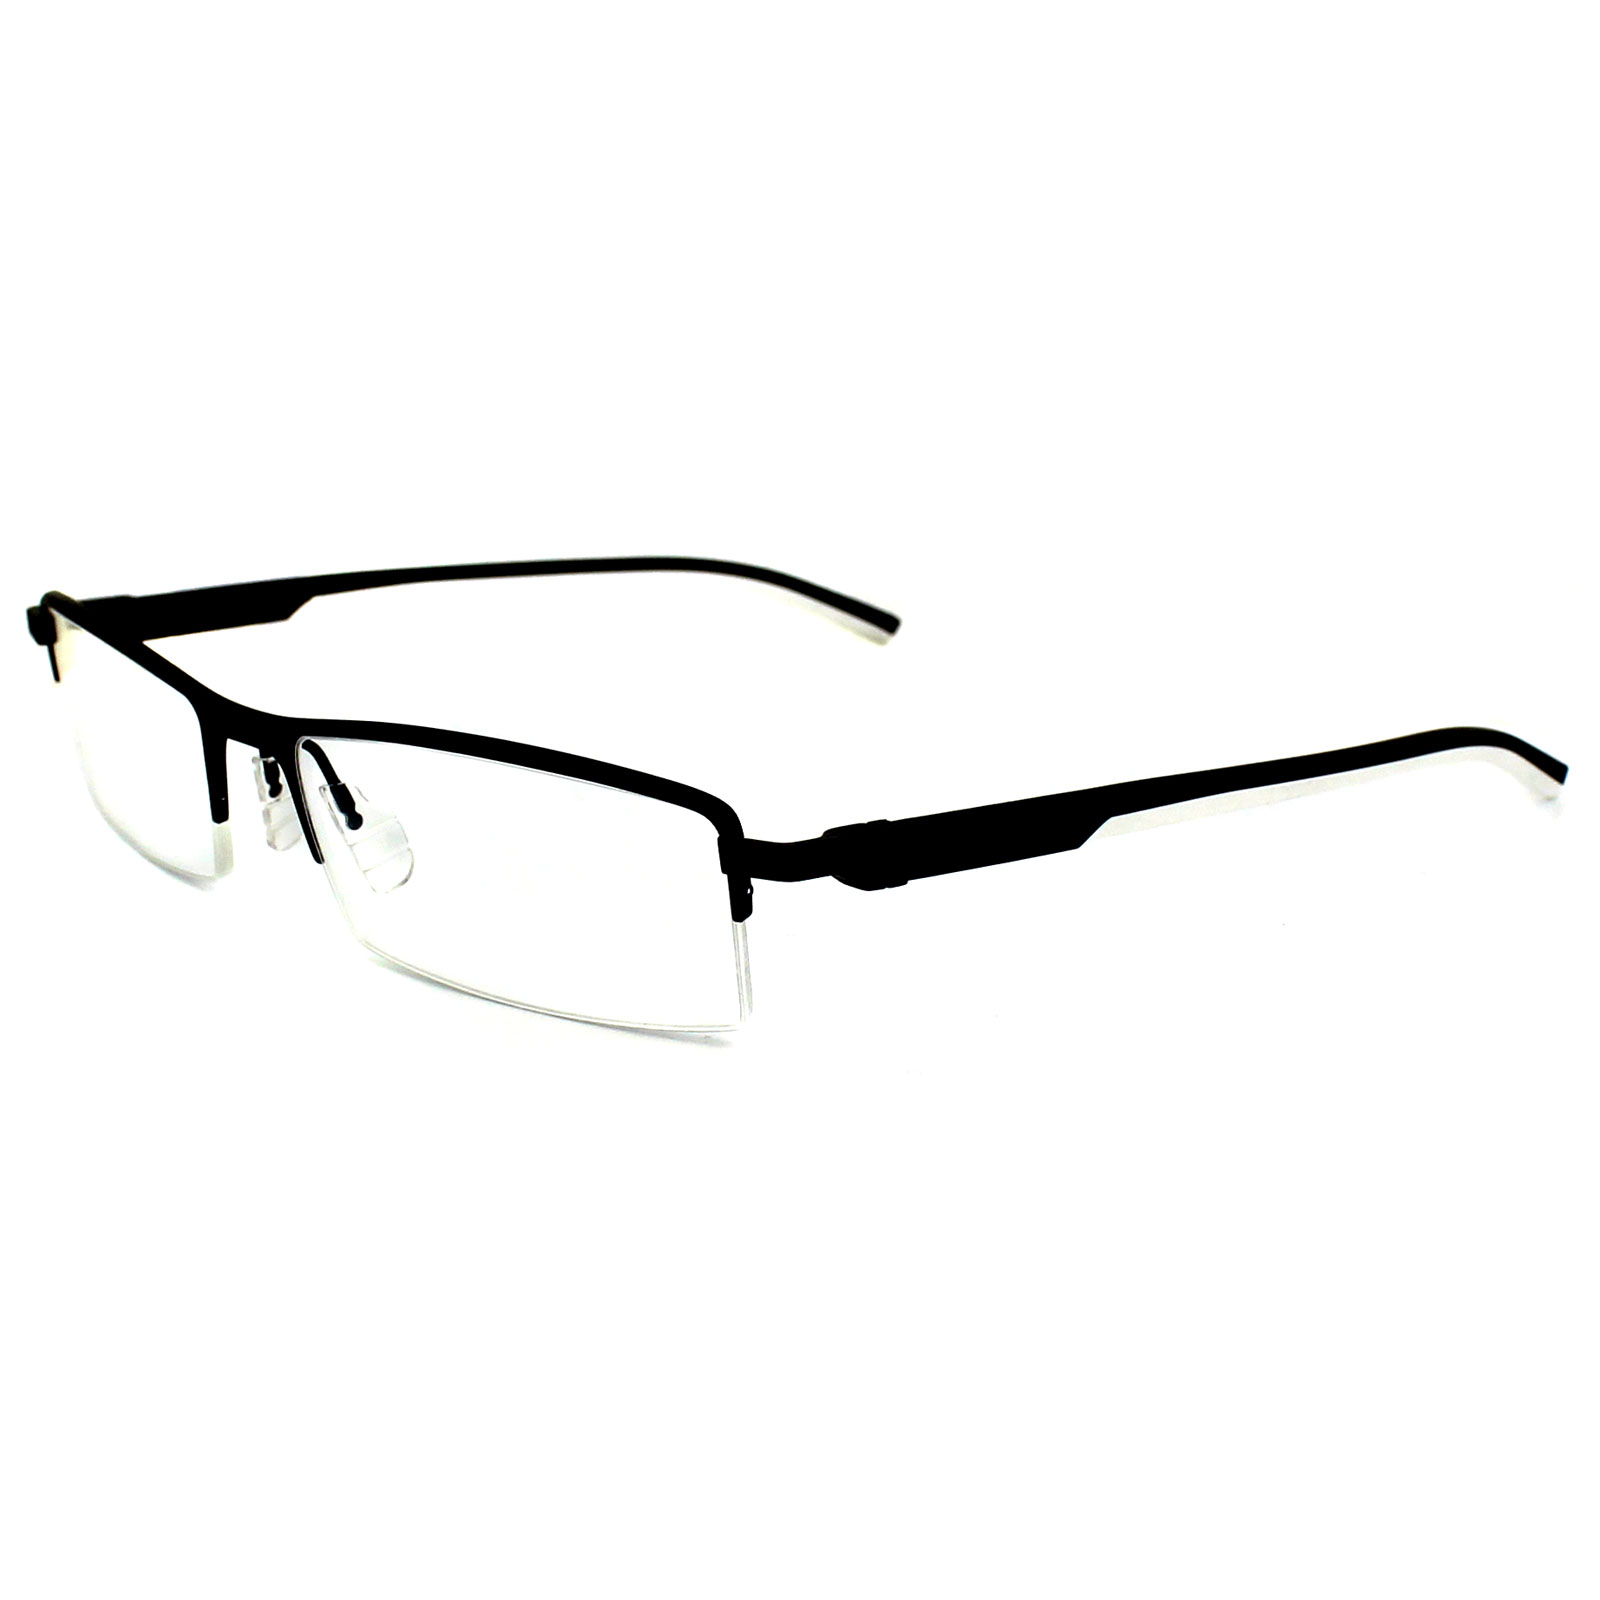 Eyeglasses Frames Tag Heuer : Cheap Tag Heuer Glasses Frames Automatic 0821 011 Matt ...